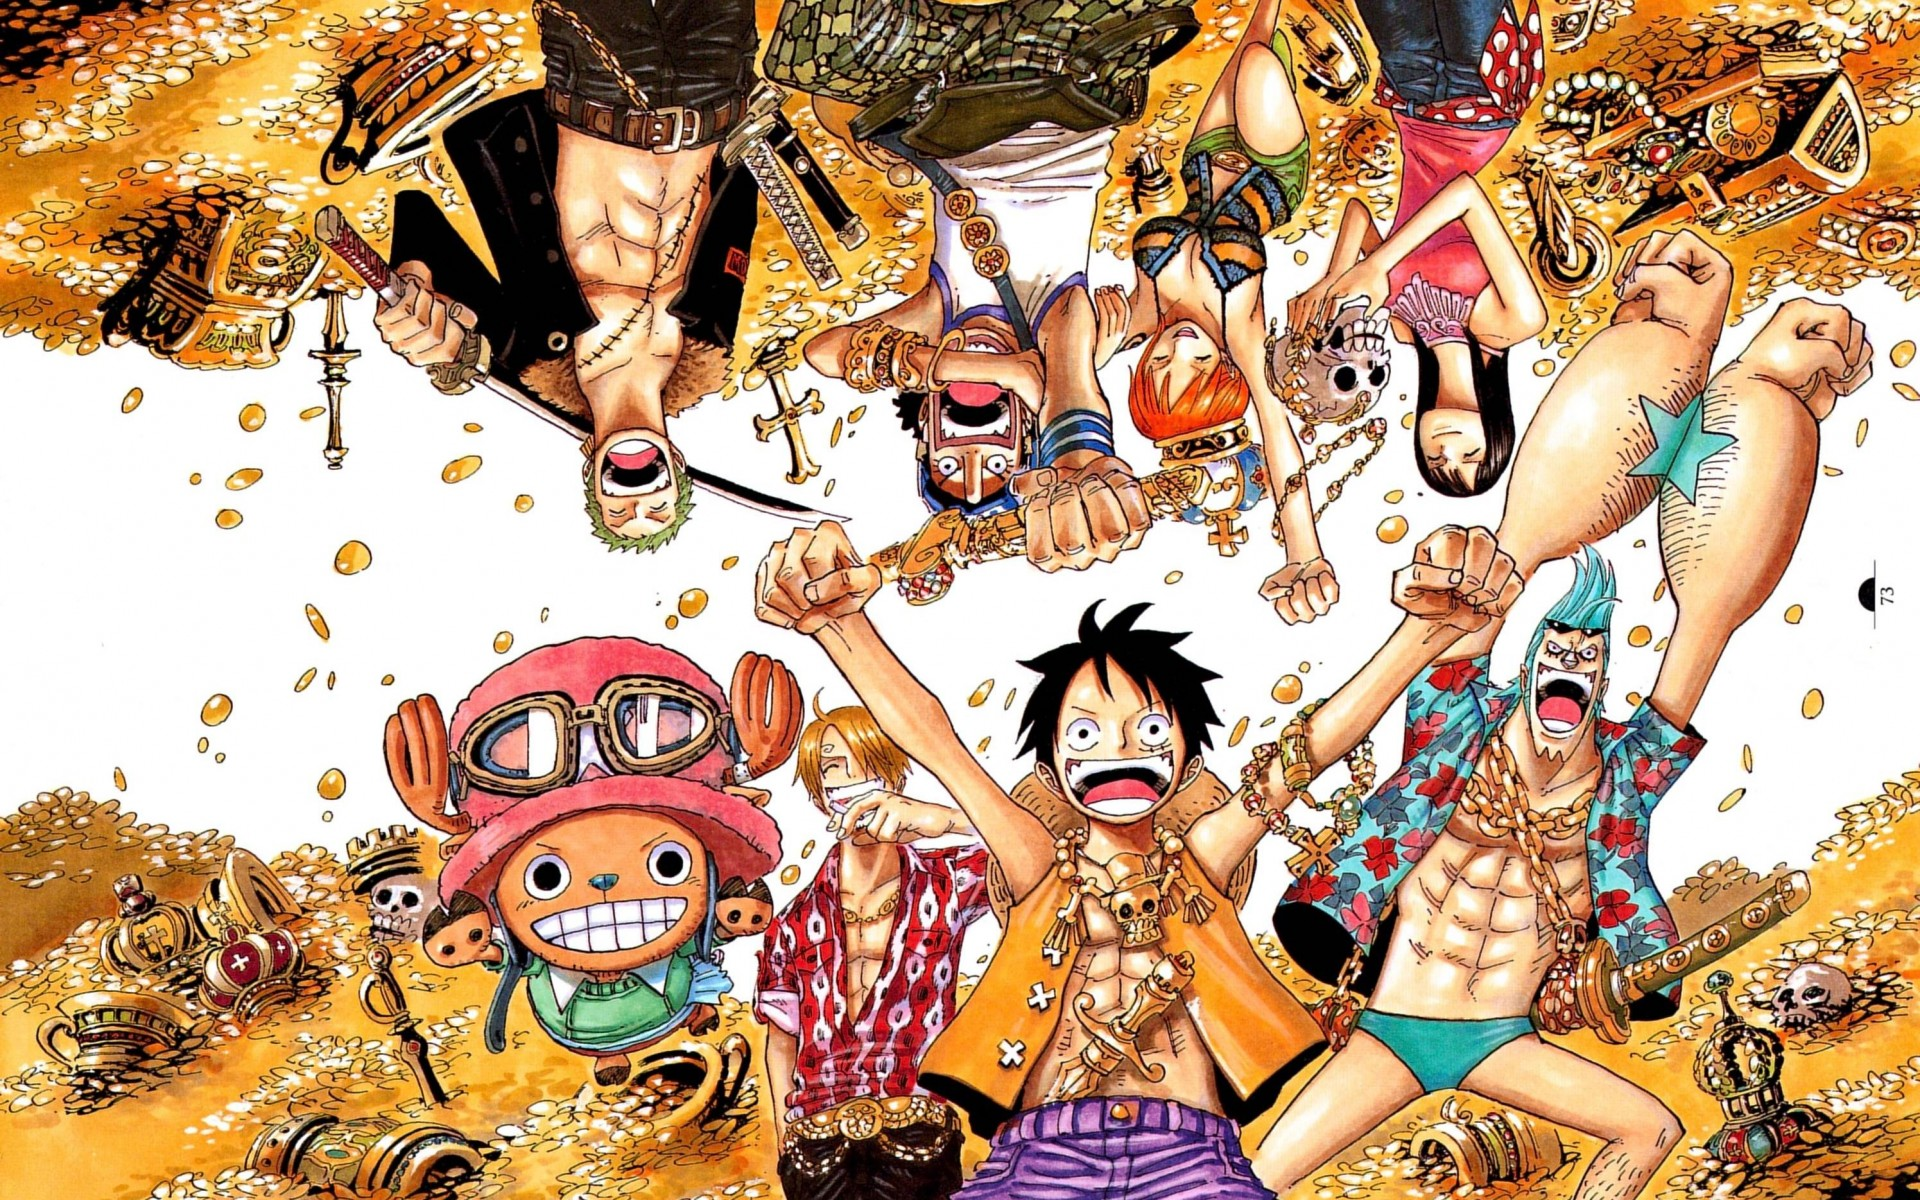 wallpapers hd One Piece Mirror Anime Pict Background HD Wallpaper 1920x1200